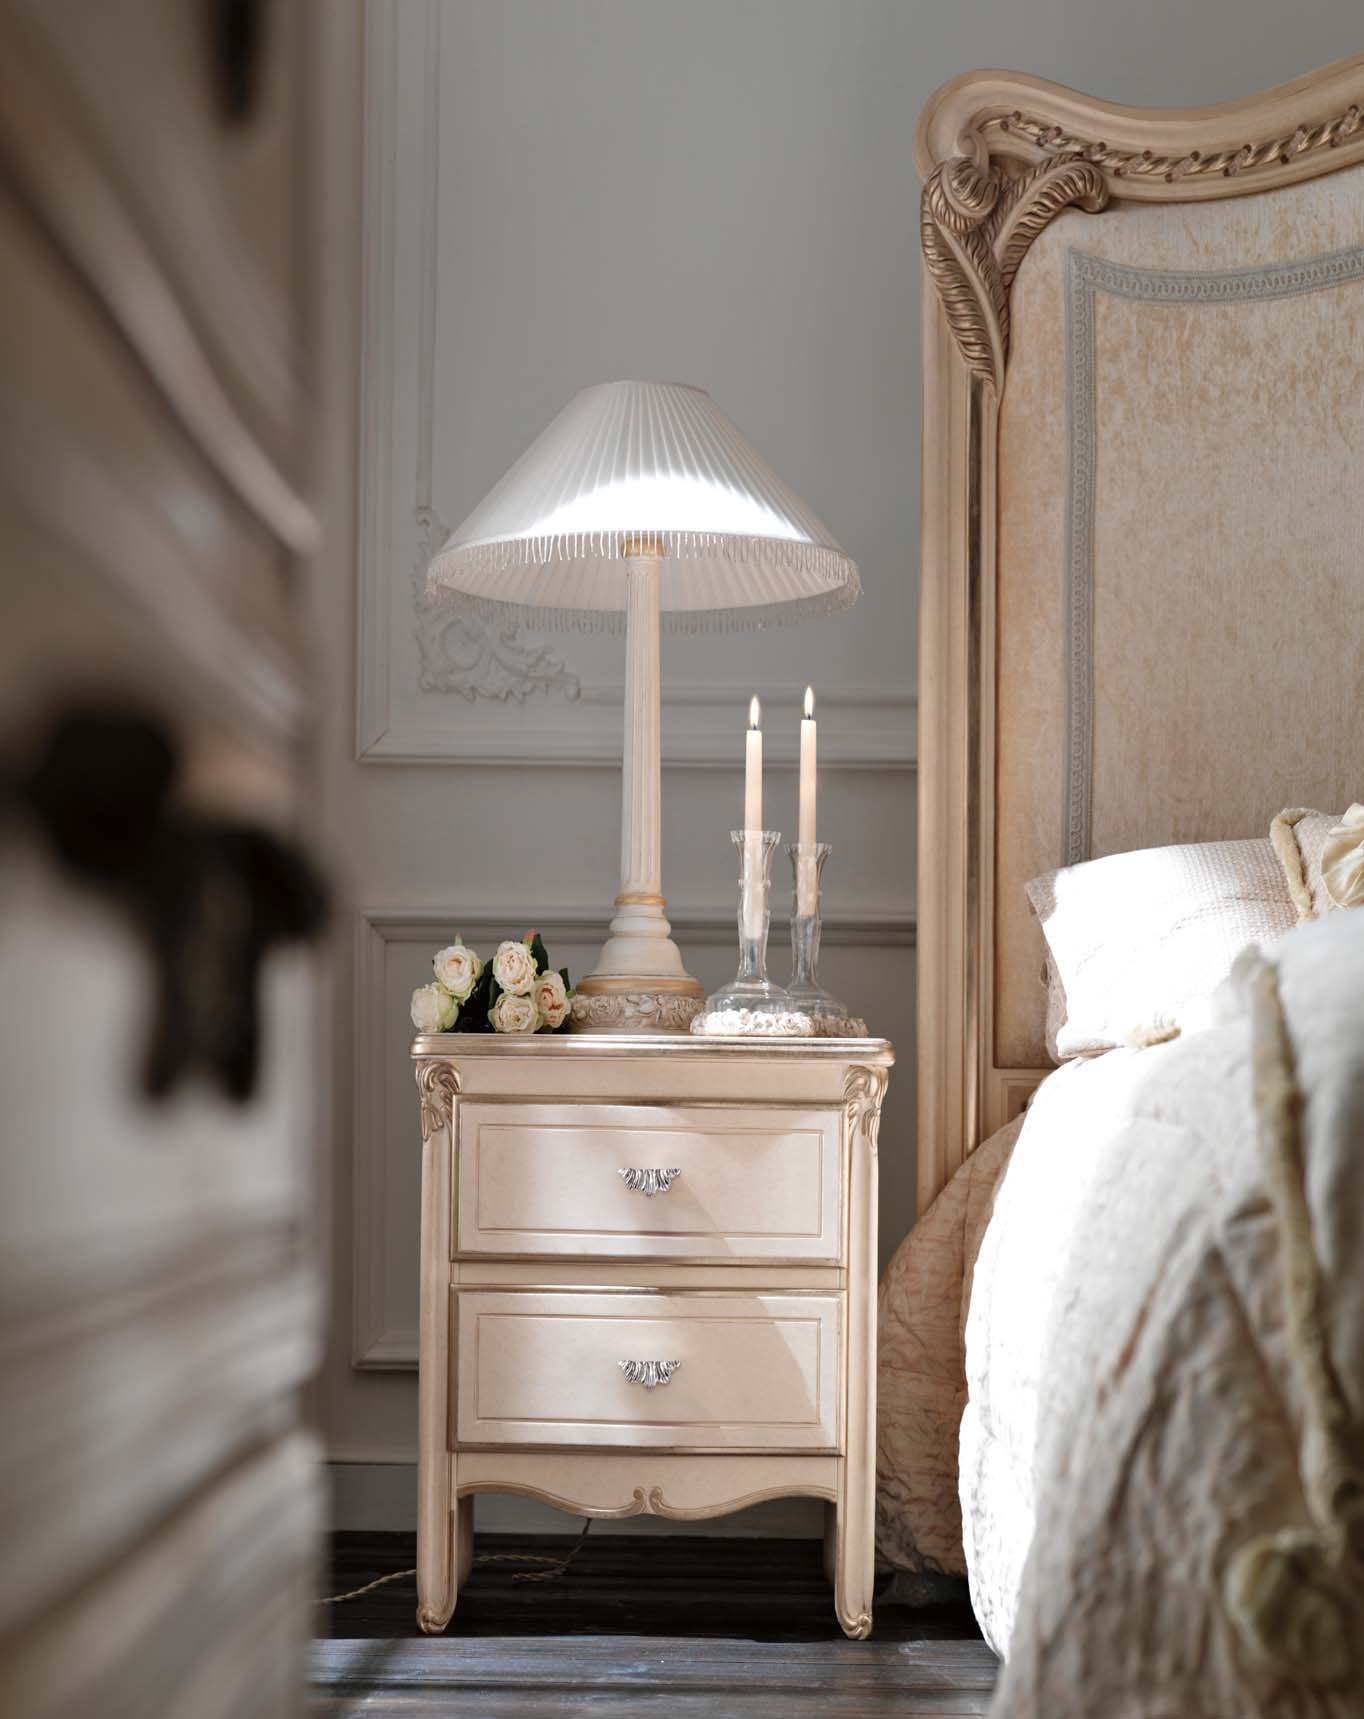 Bedside Table With 2 Drawers Solid Wood Ambiente Notte